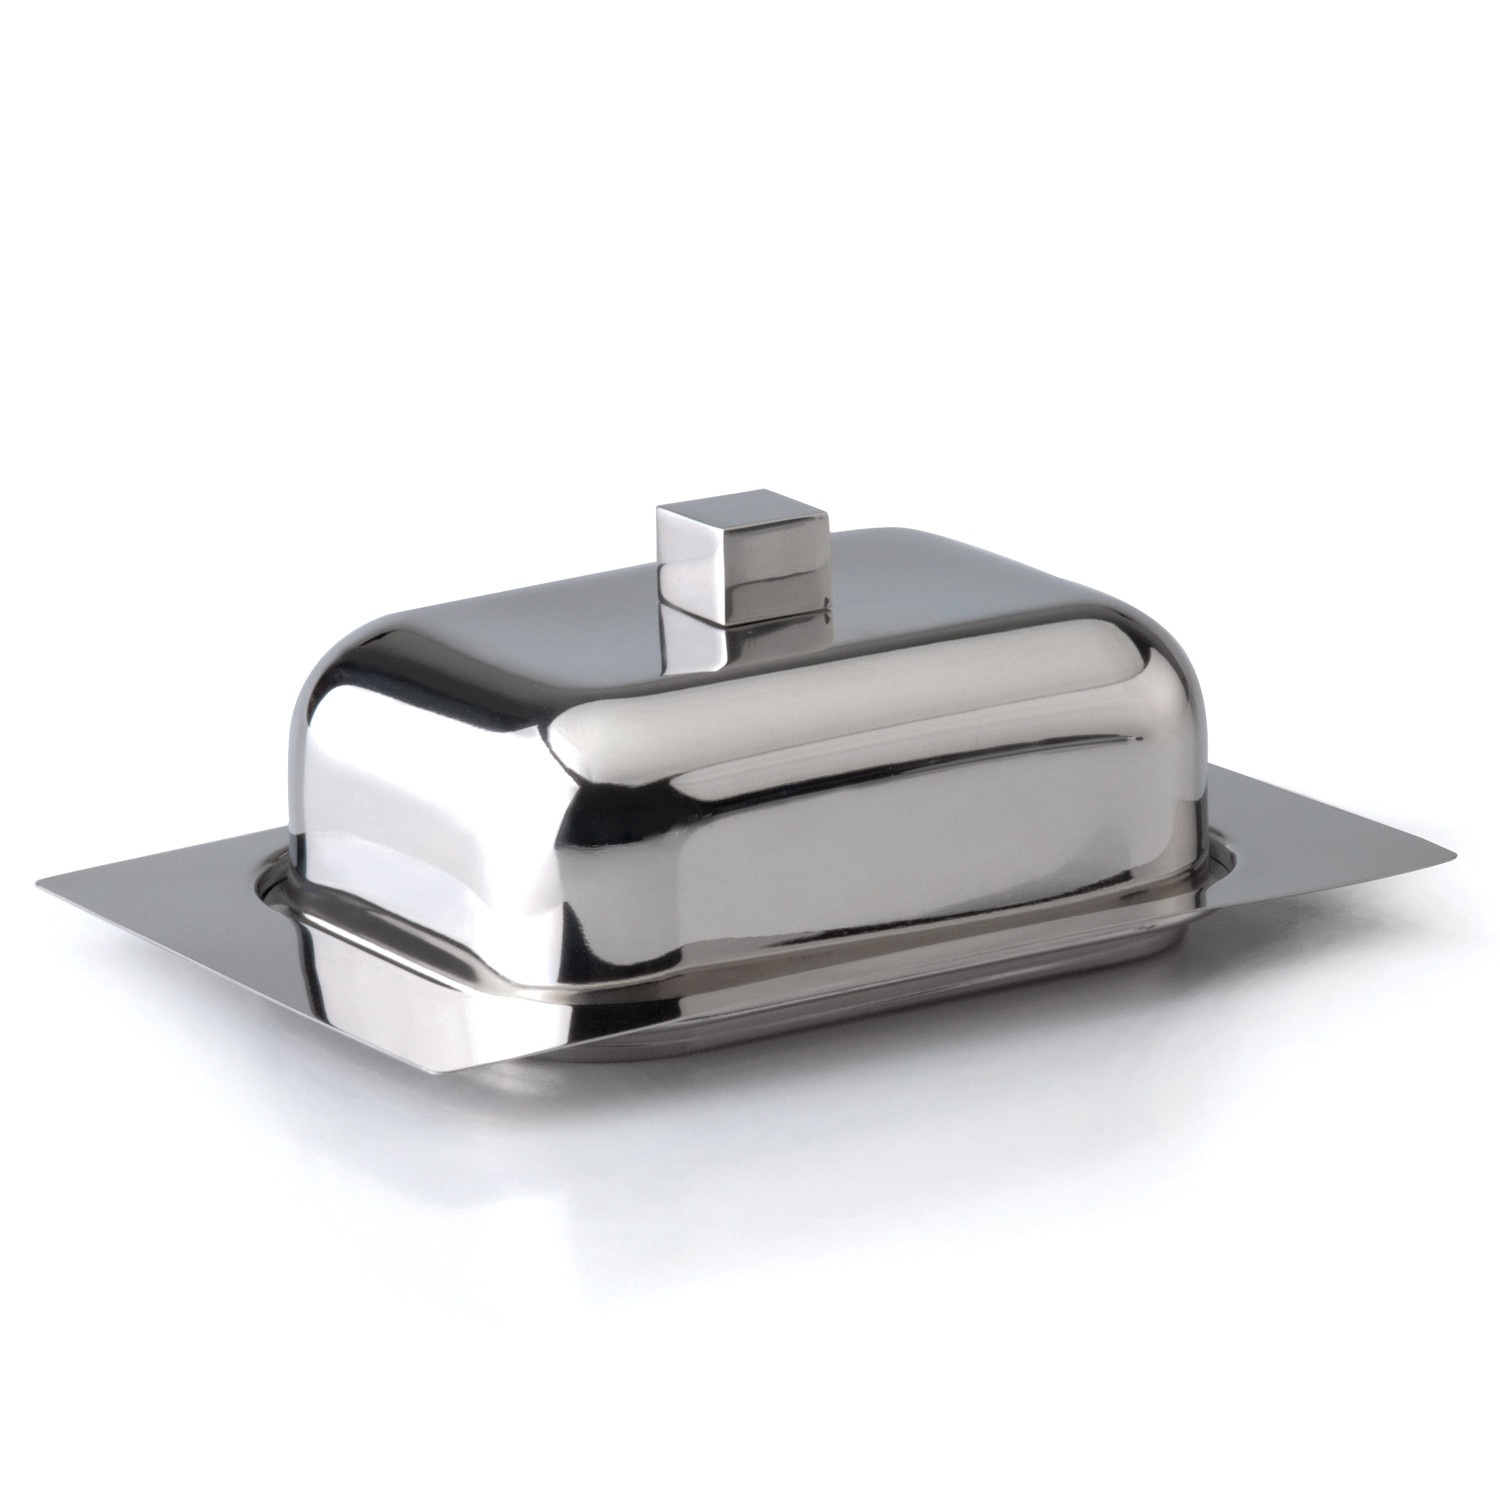 cubo stainless steel butter dish  berghoff  touch of modern - cubo stainless steel butter dish